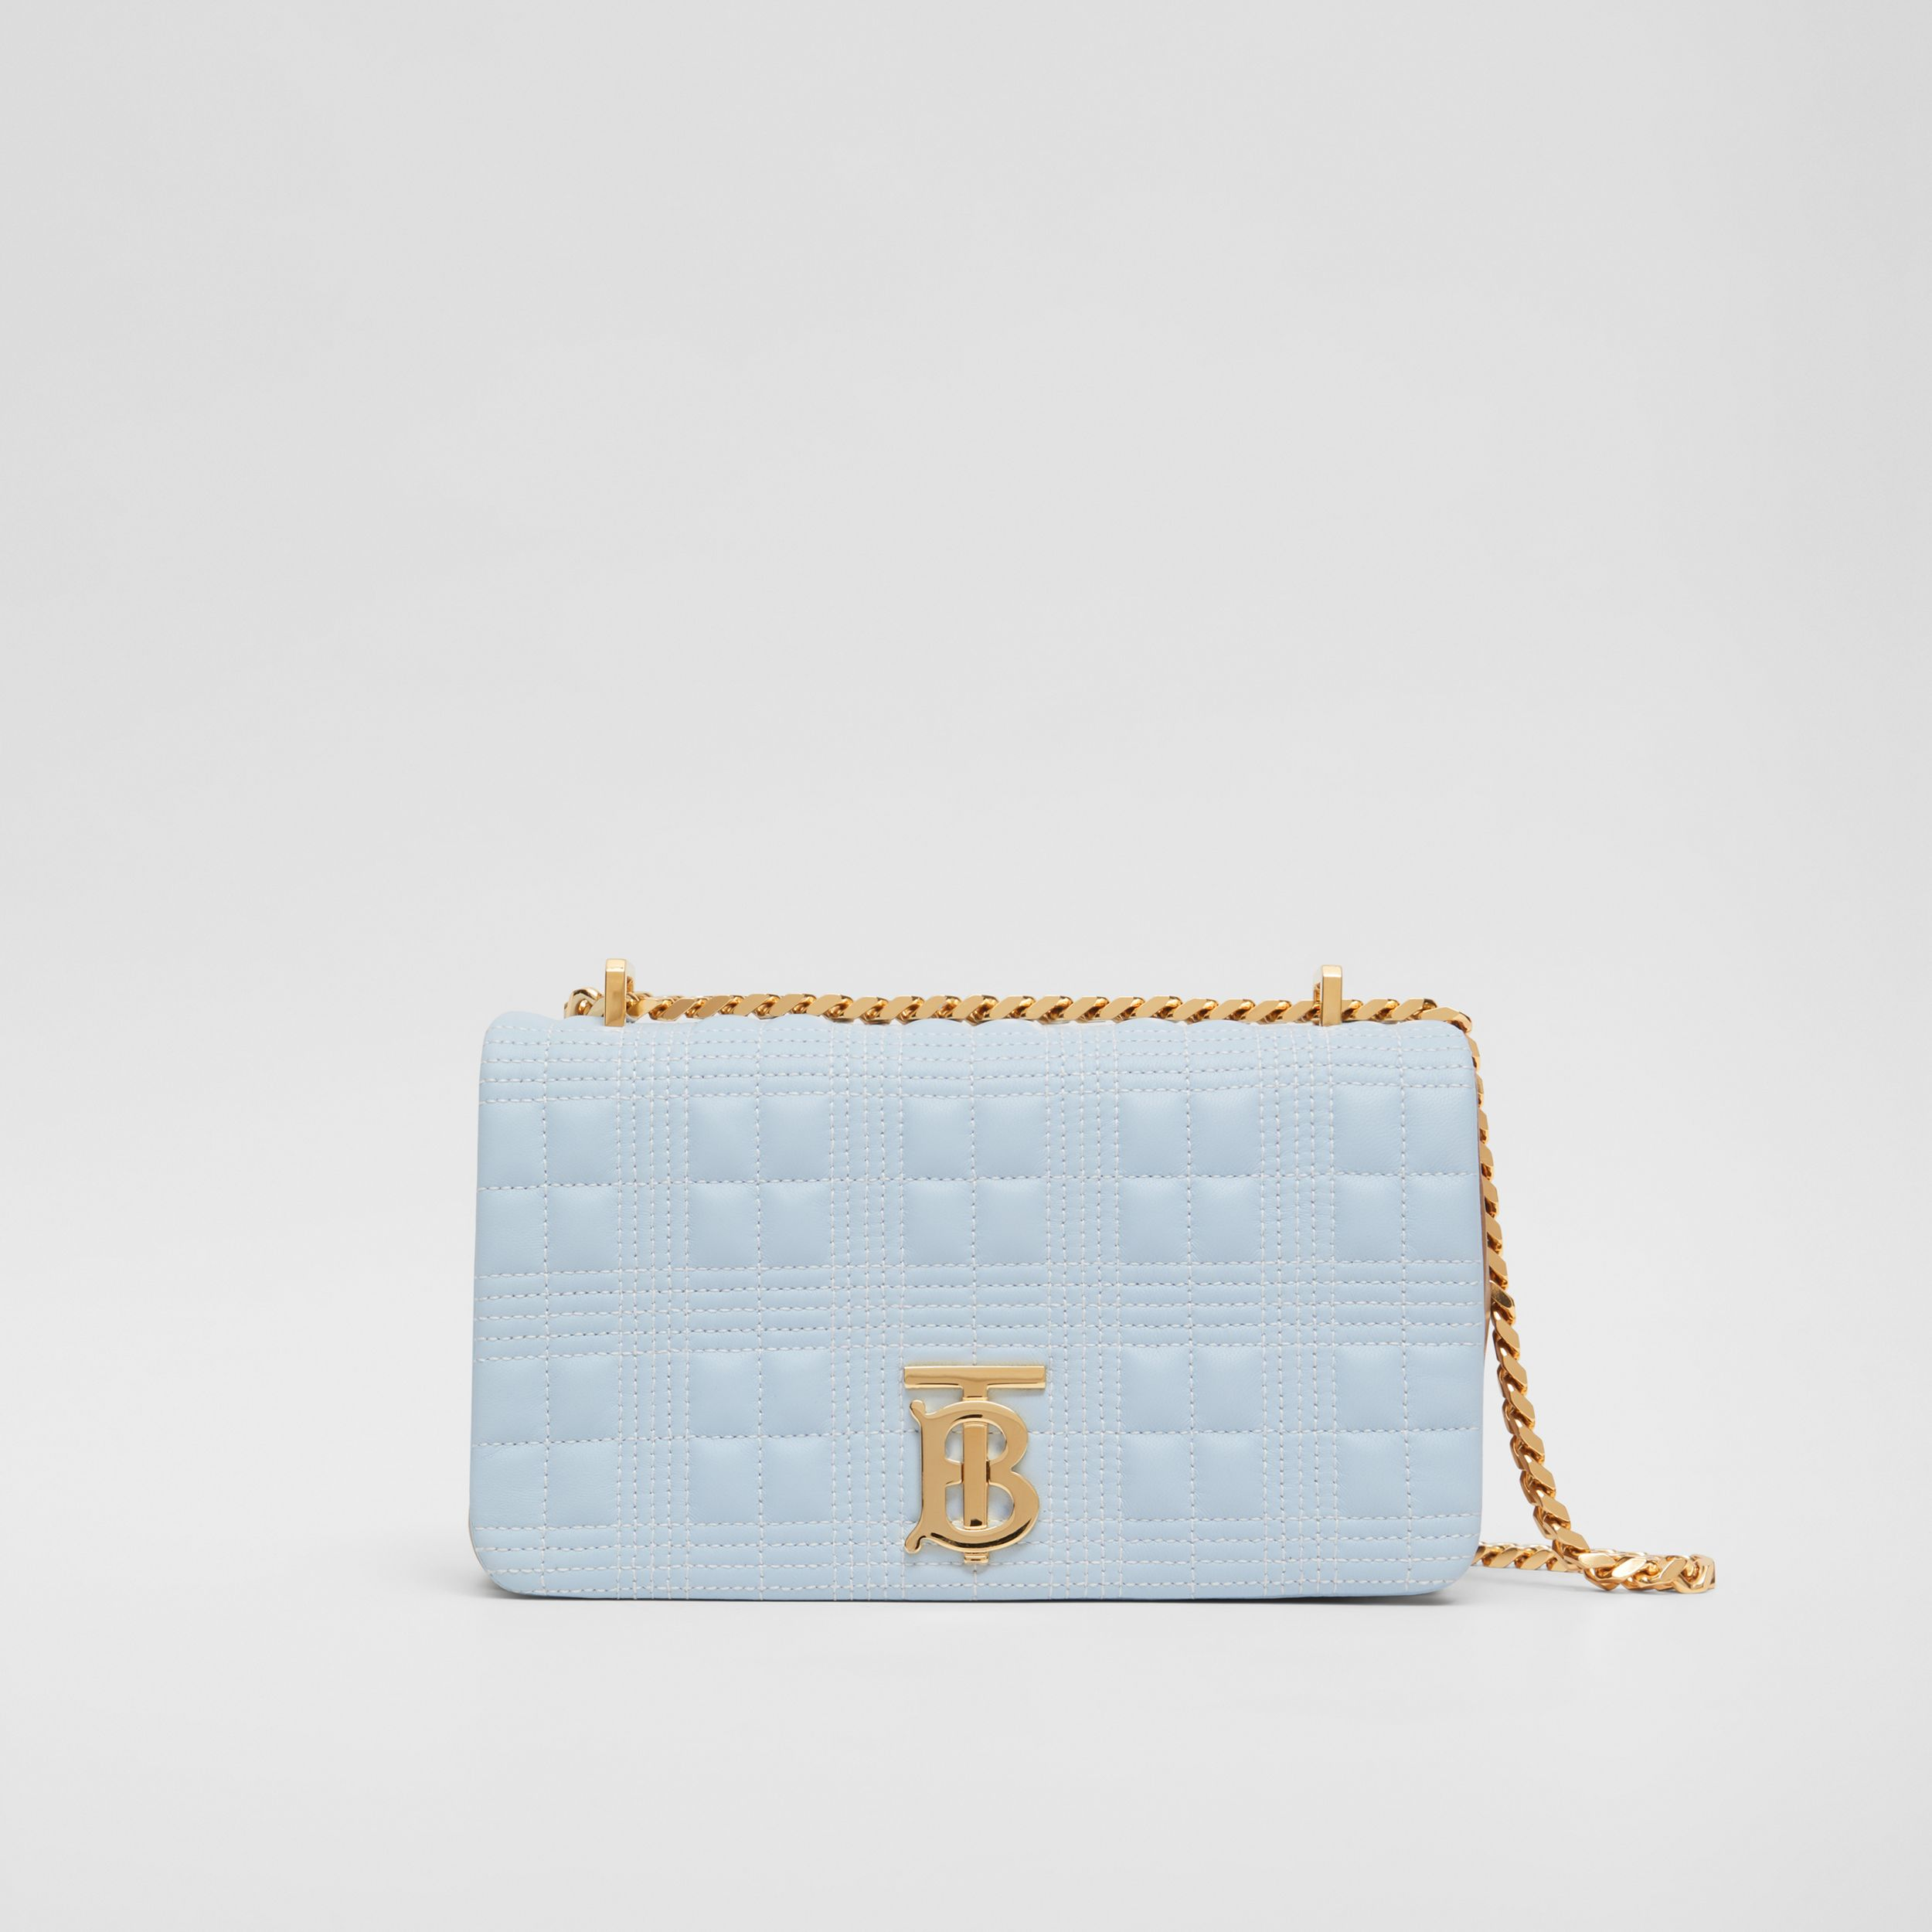 Small Quilted Tri-tone Lambskin Lola Bag in Pale Blue/camel/black - Women | Burberry - 1